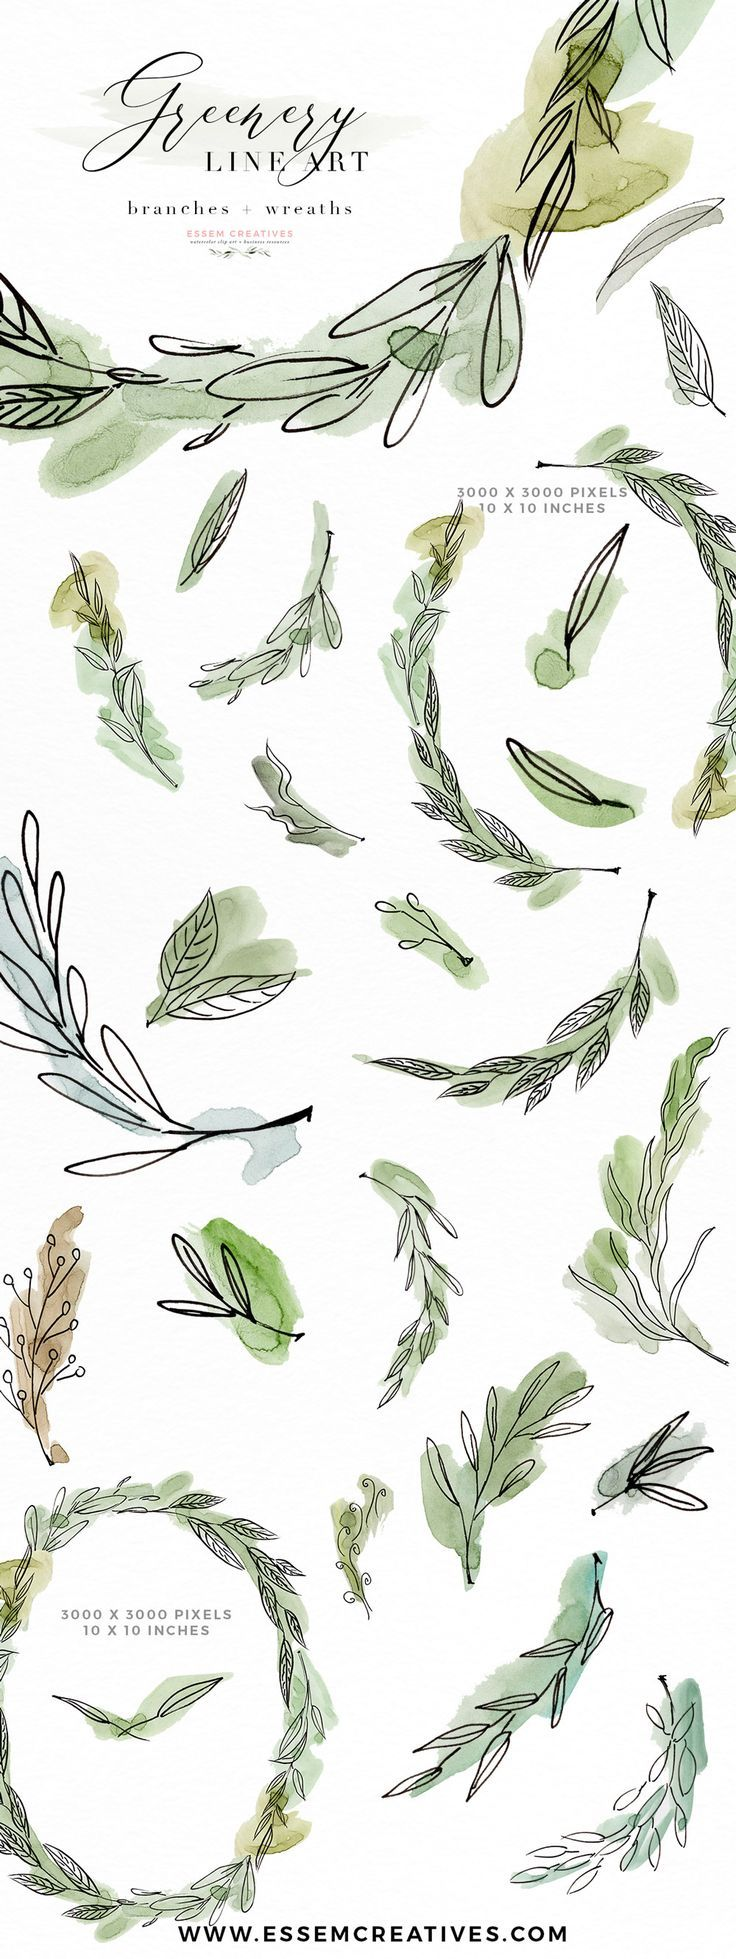 Photo of Greenery Line Art Watercolor Clipart, Olive Eucalyptus Branches, Tropical Fine Art Botanical Ink Graphics with Watercolor Splashes Essem creatives